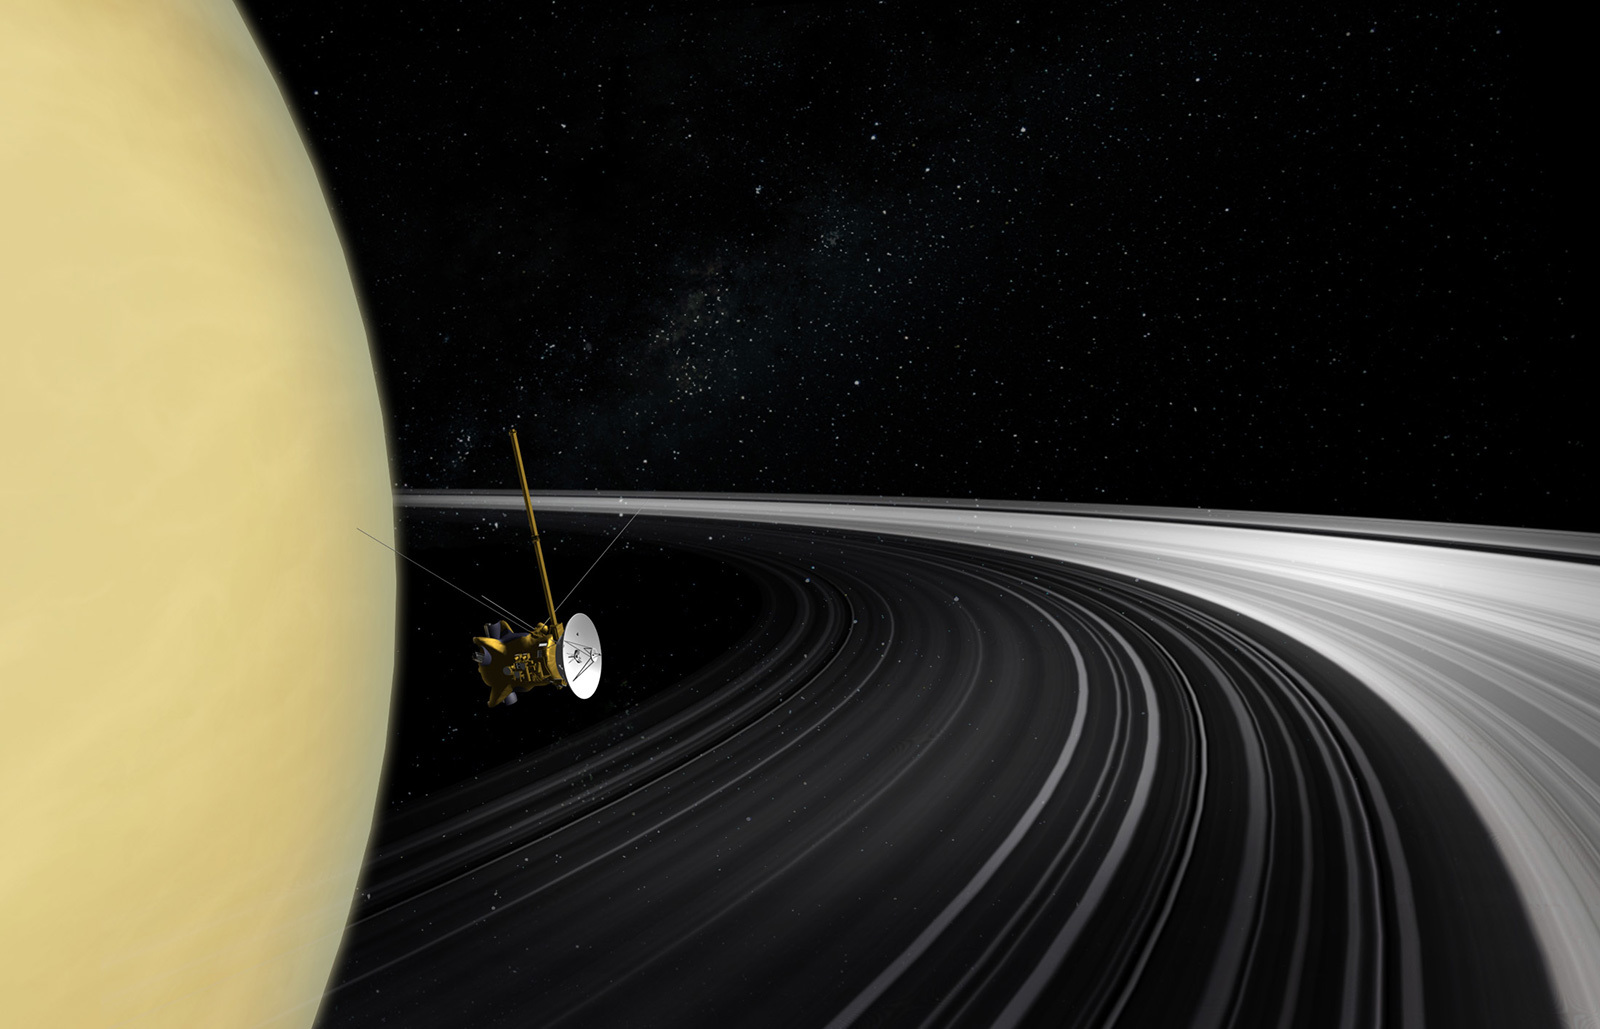 spacecraft passing between Saturn and the rings